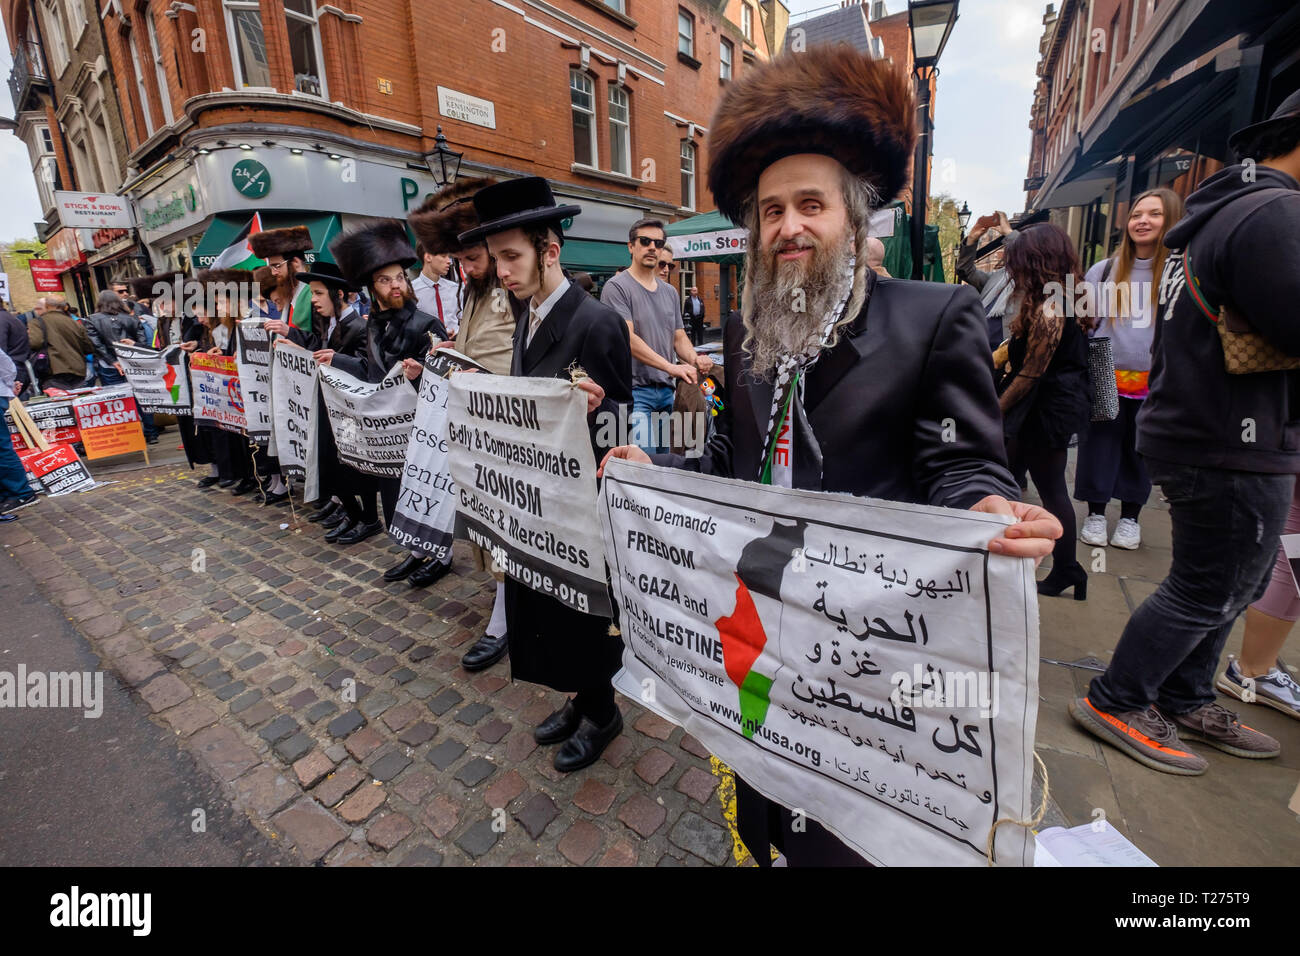 London, UK. 30th March 2019. Neturei Karta ultra-orthodox Jews show their solidarity with the Palestinian people against the Zionist state of Israel, which they say does not represent authentic Jewry. They condemn the atrocities which the Israeli state is committing in Gaza and say that Judaism demands freedom in Gaza and all Palestine and had come to support the Palestinian Land Day protest. While I was there police led away a Zionist who had come to shout anti-semitic comments at them as they stood in silence holding their posters. Peter Marshall Alamy Live News Credit: Peter Marshall/Alamy  - Stock Image